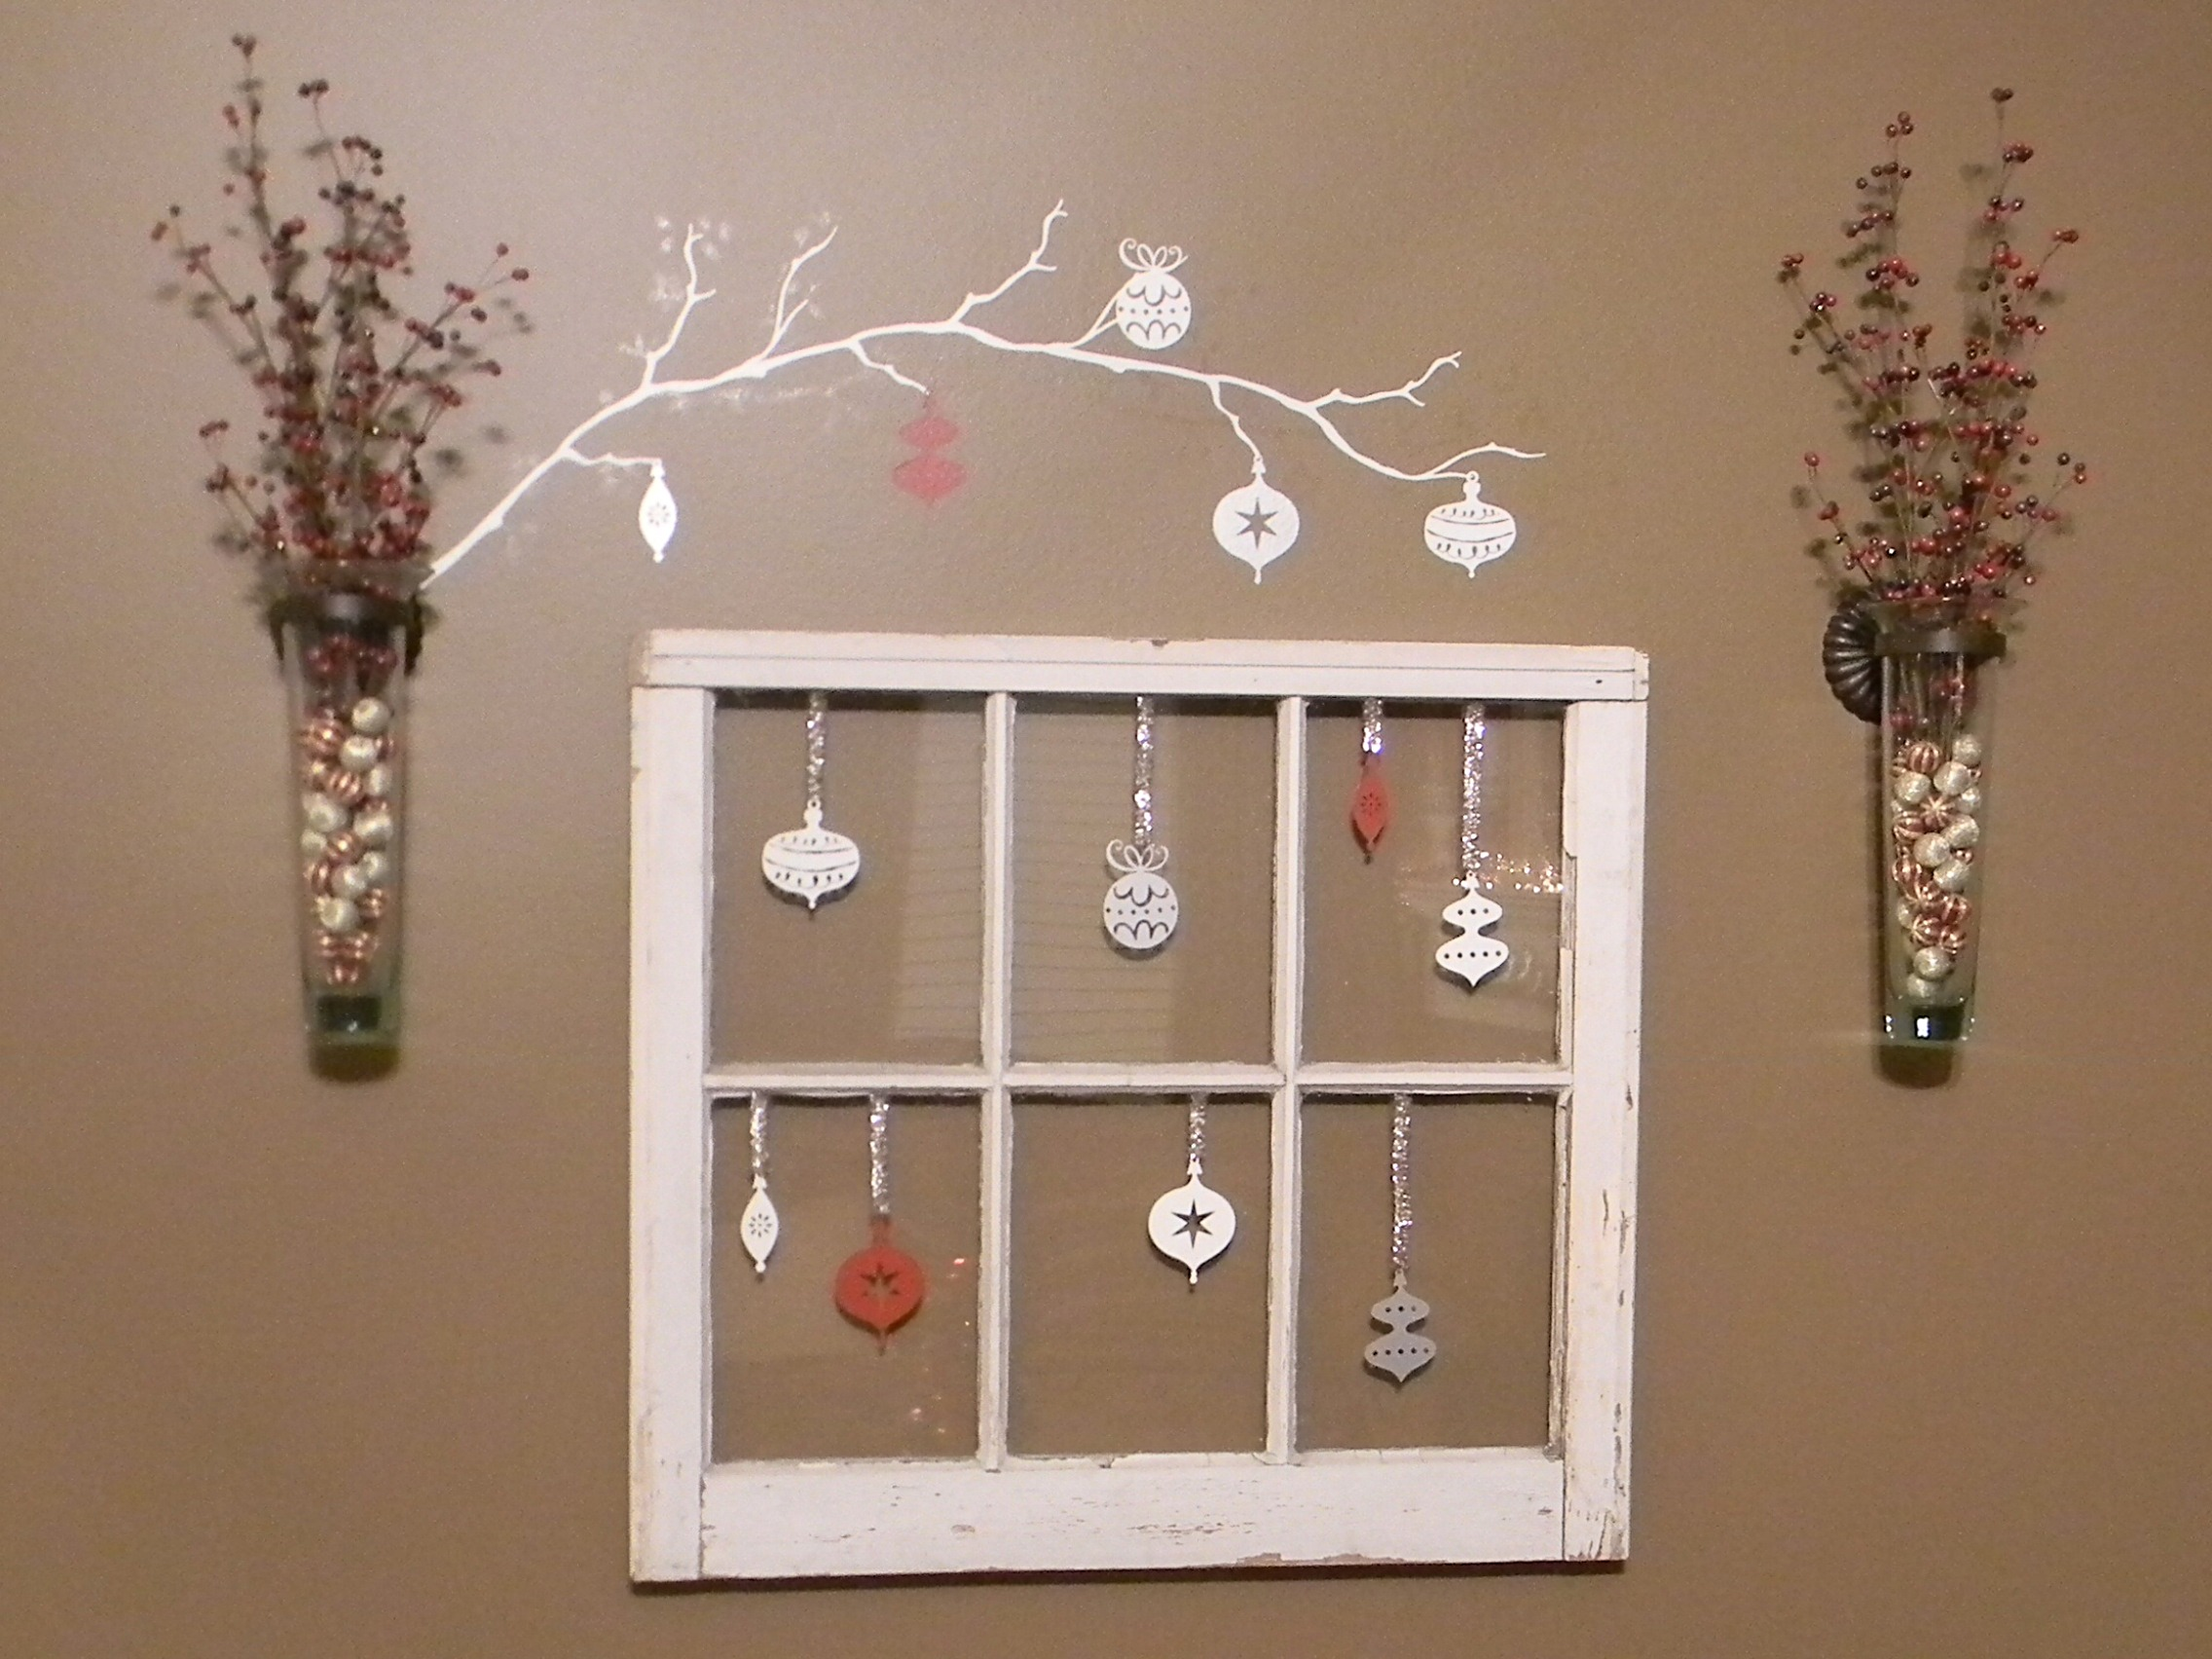 Christmas Decorations On Window : Christmas window organize and decorate everything